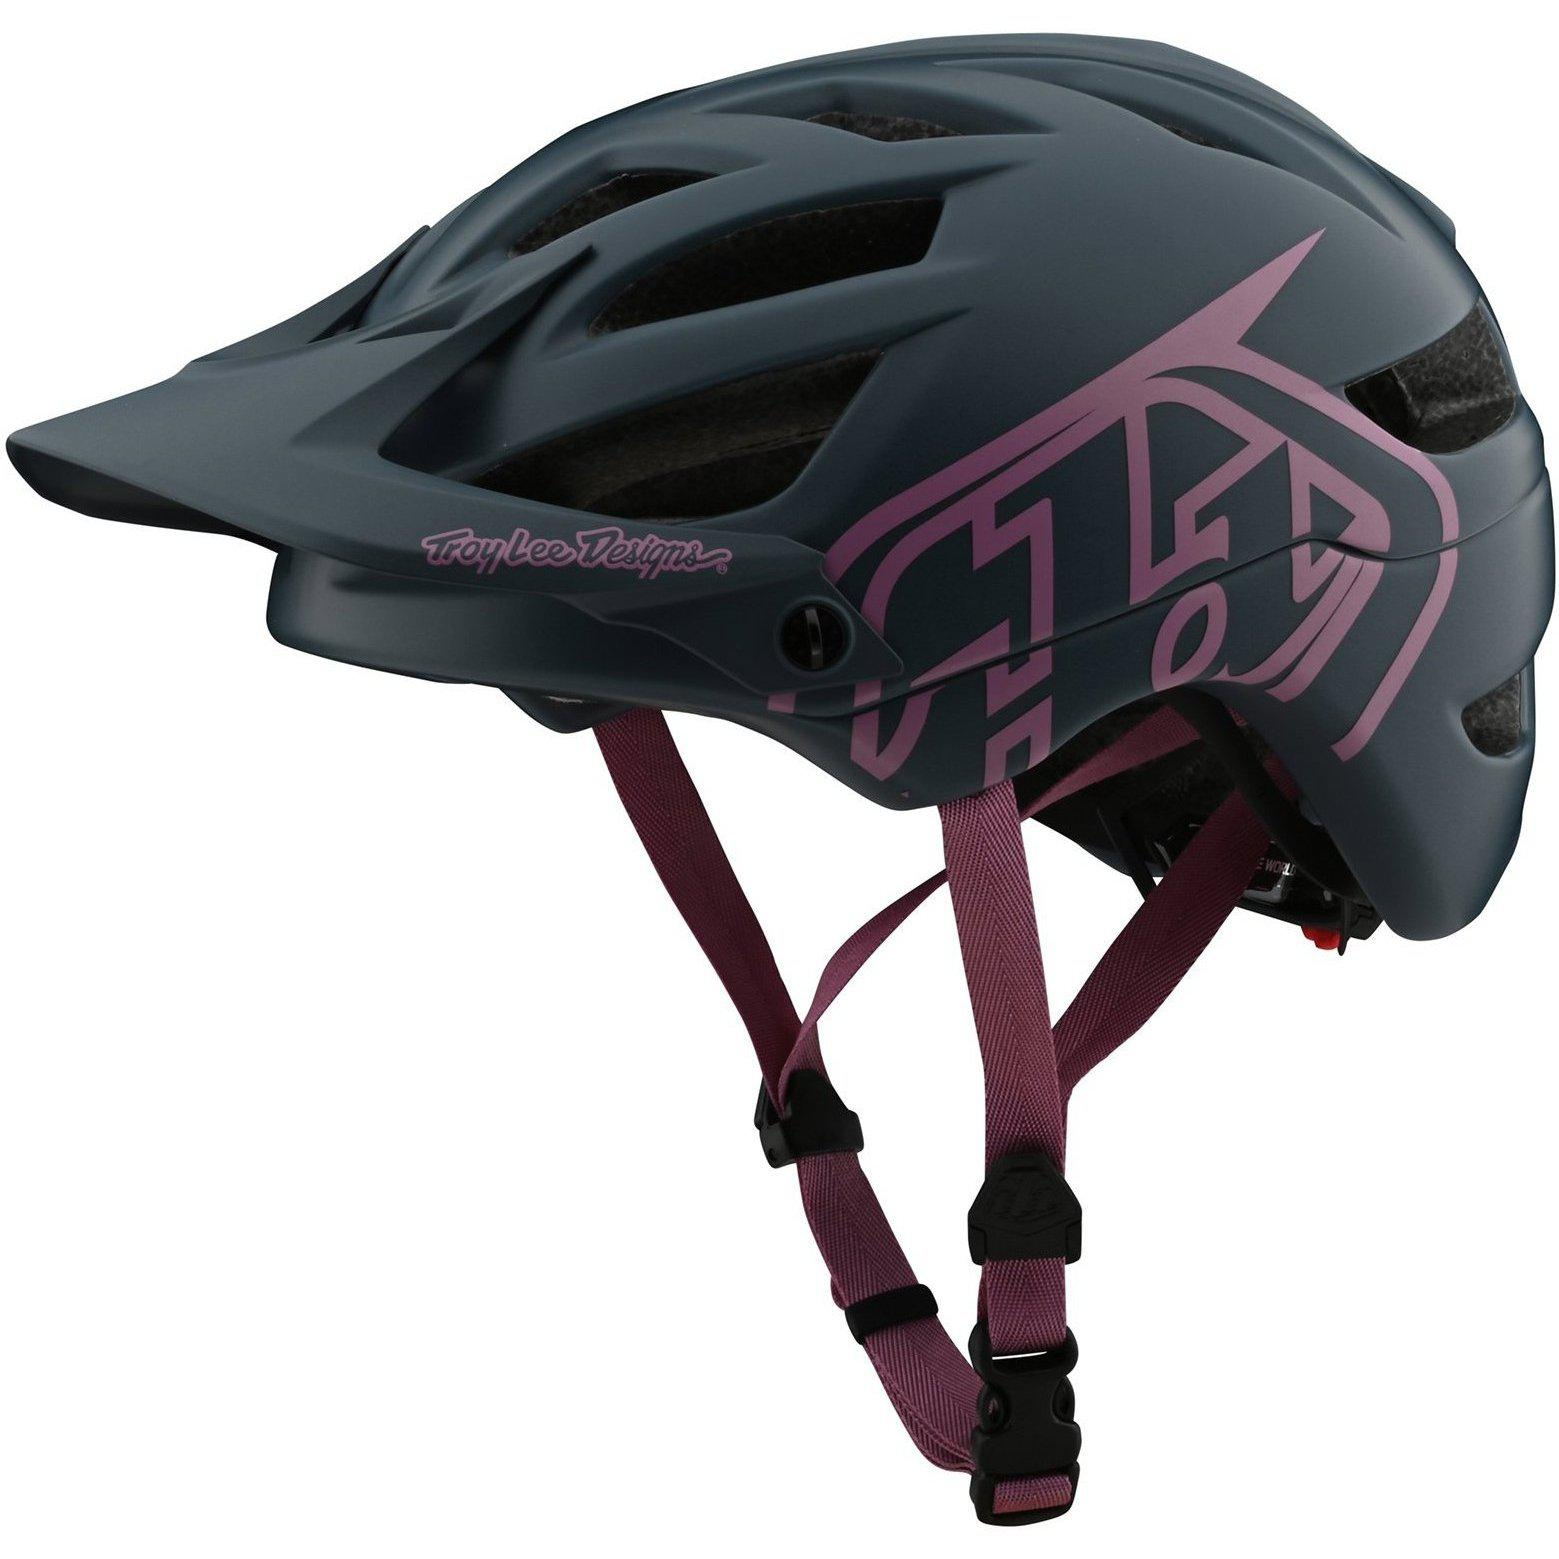 Troy Lee Designs-Troy Lee Designs A1 Drone Helmet-Drone - Gray/Pink-M/L-TLD131097123-saddleback-elite-performance-cycling